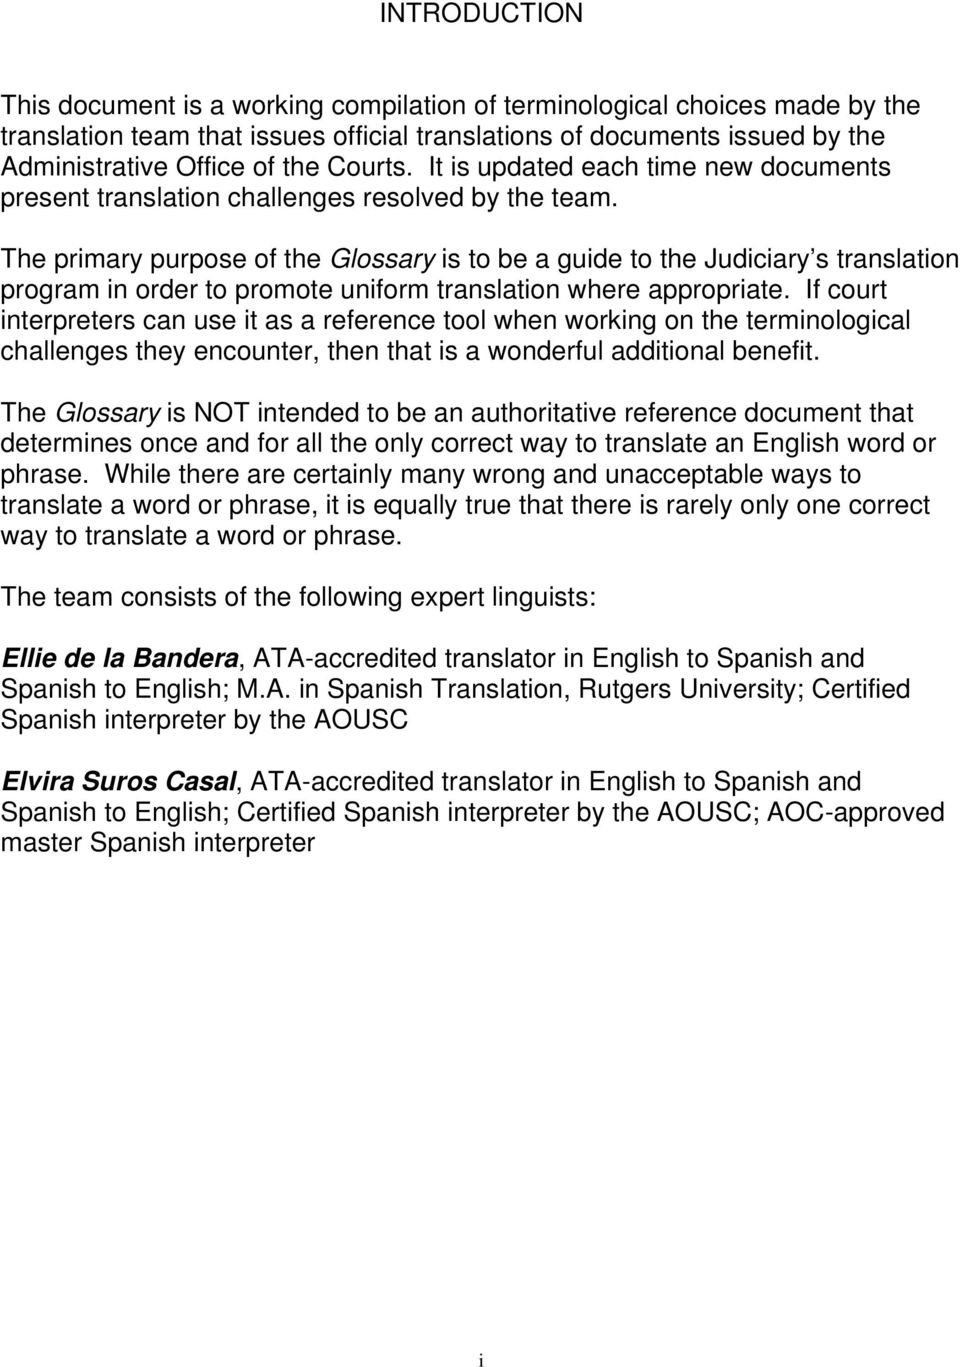 The primary purpose of the Glossary is to be a guide to the Judiciary s translation program in order to promote uniform translation where appropriate.